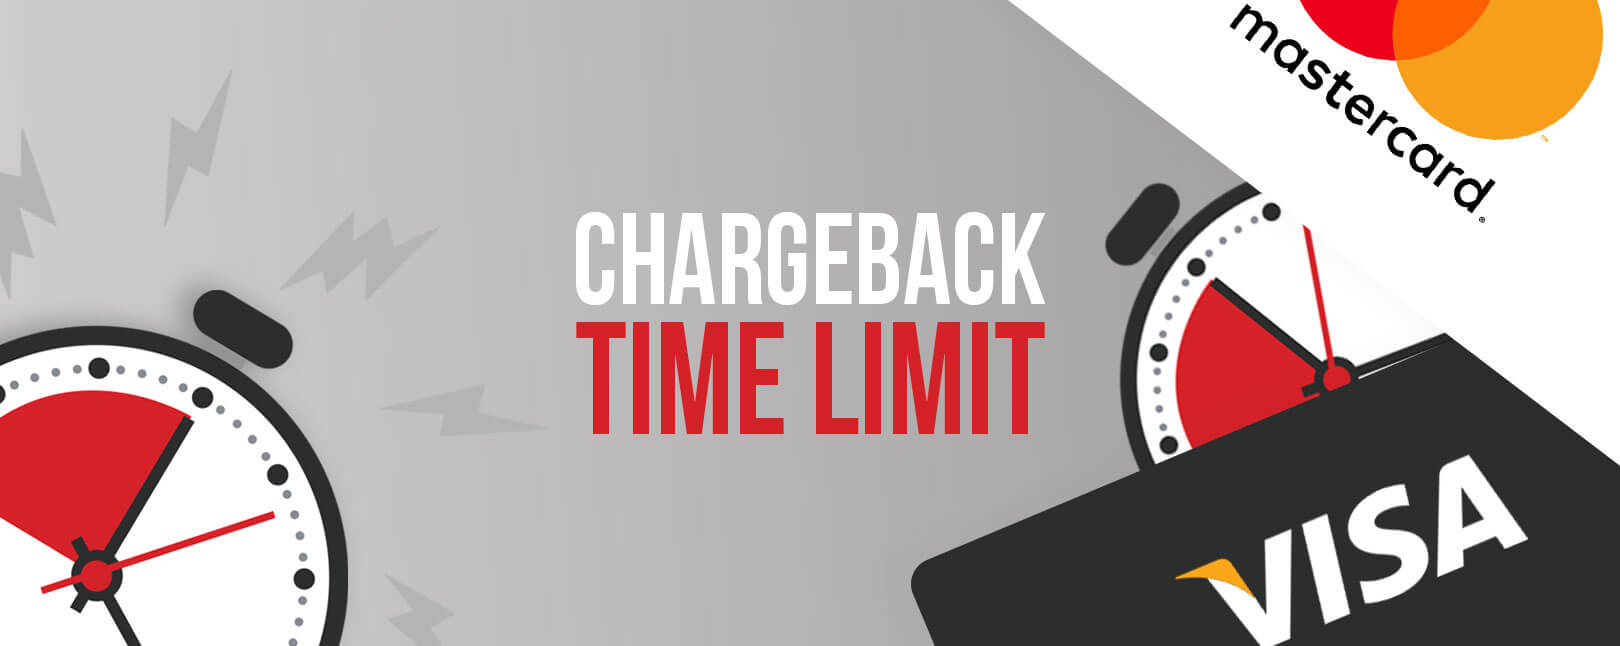 chargebacks time limit